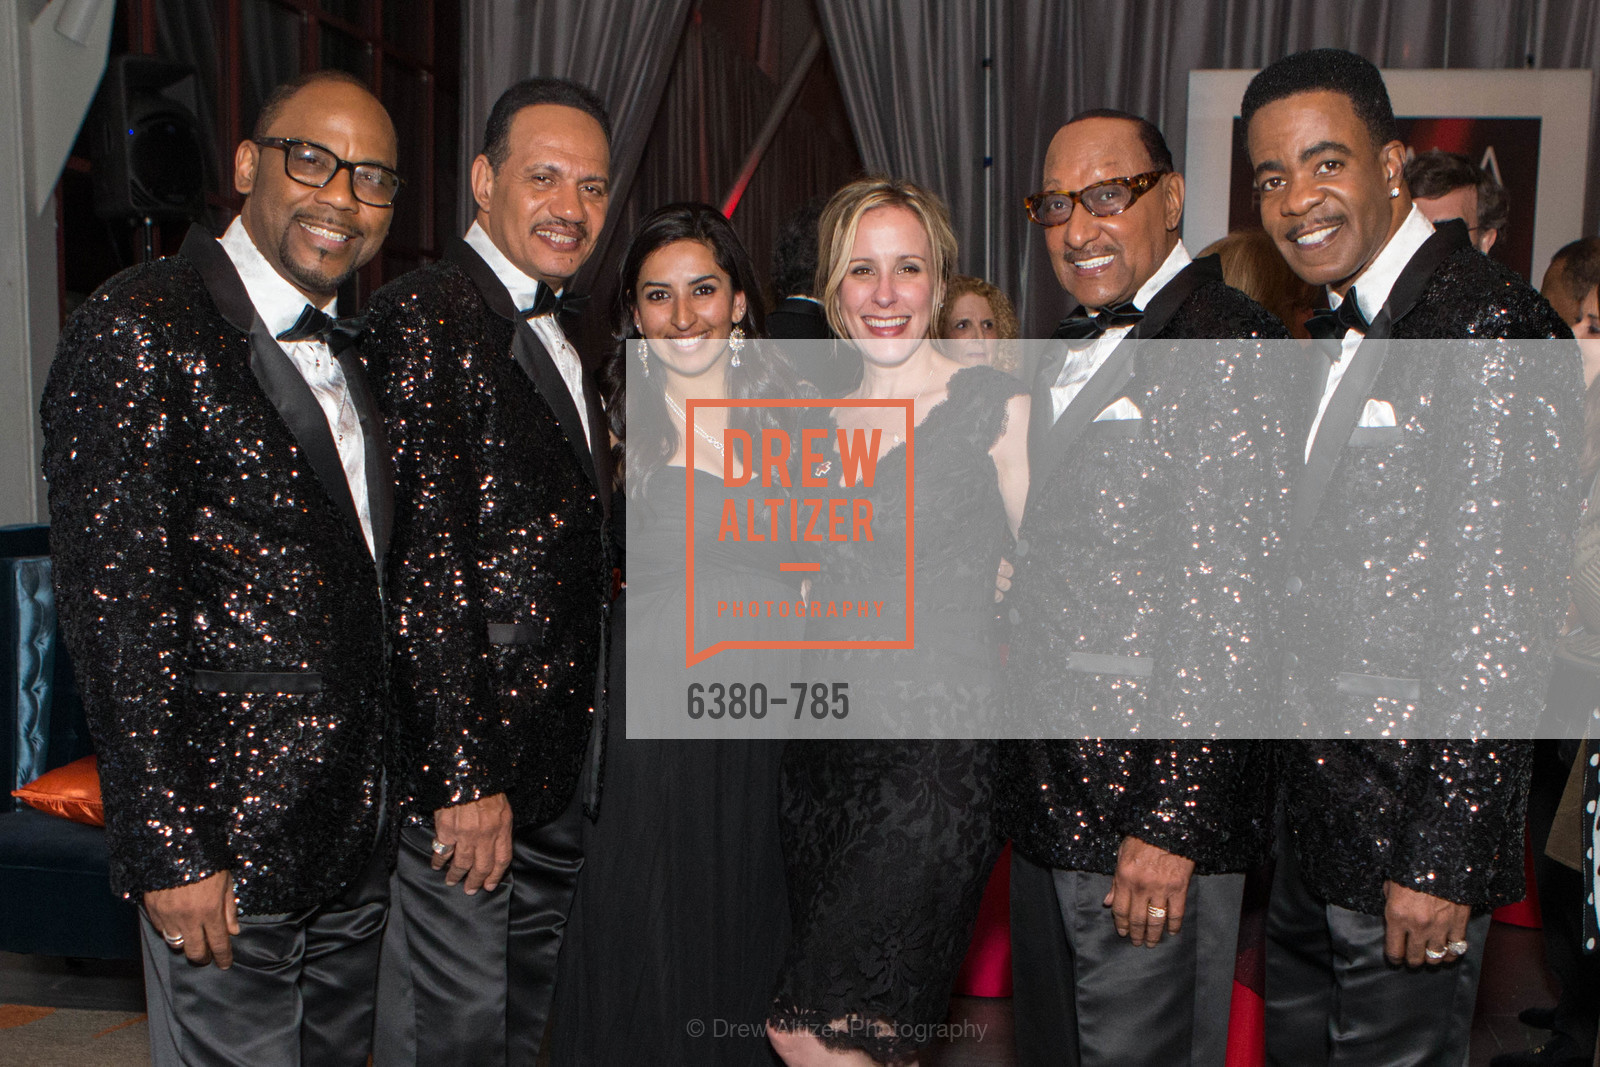 Lawrence Payton, Ronnie McNair, Duke Fakir, Spike Bonhart, 2015 RED CROSS Gala, US, April 11th, 2015,Drew Altizer, Drew Altizer Photography, full-service agency, private events, San Francisco photographer, photographer california